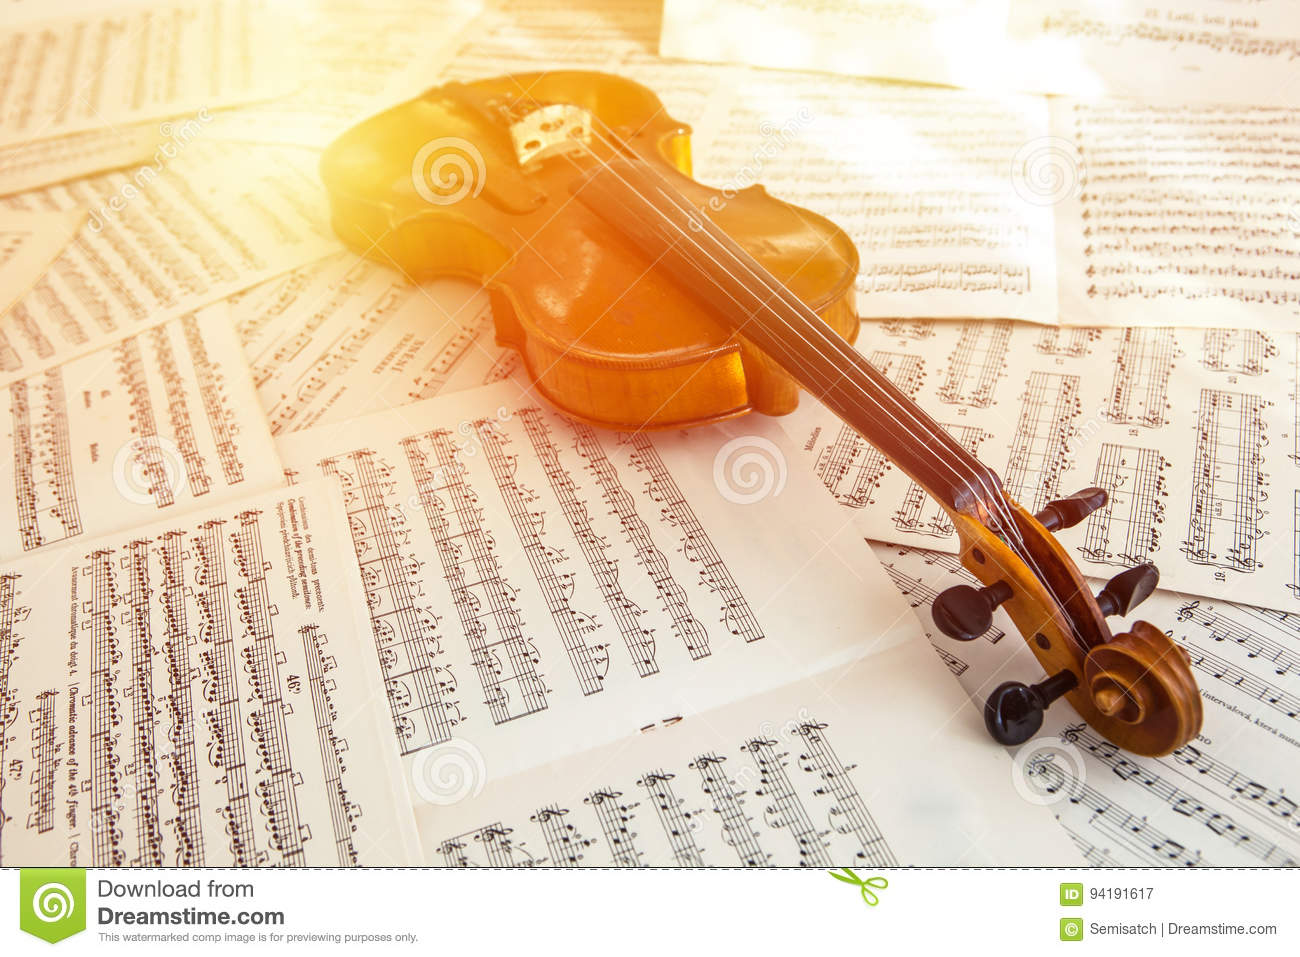 Old Violin Lying On The Sheet Of Music Stock Image - Image